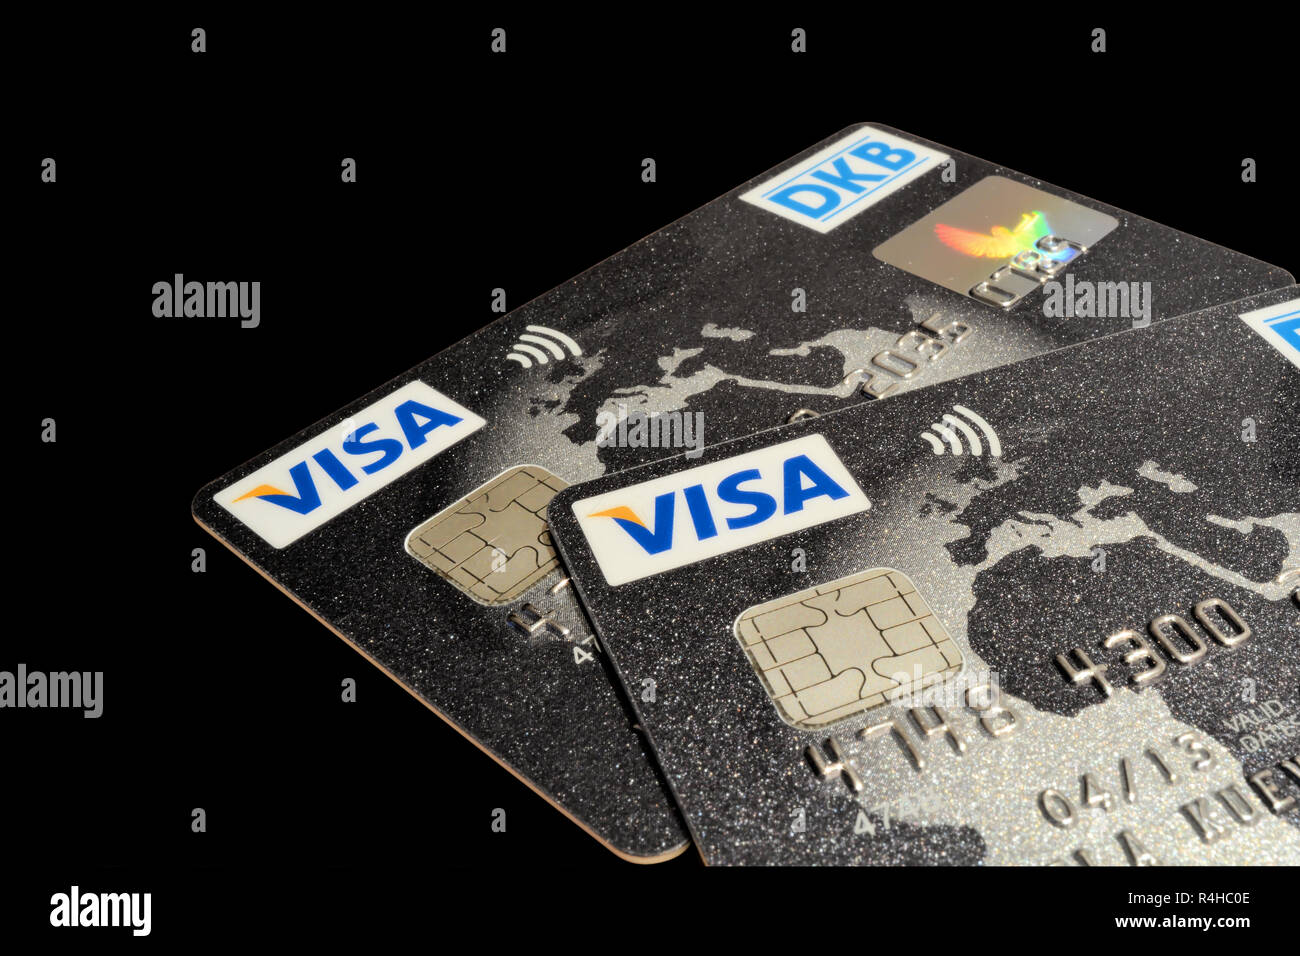 Visa cards with black background - Stock Image